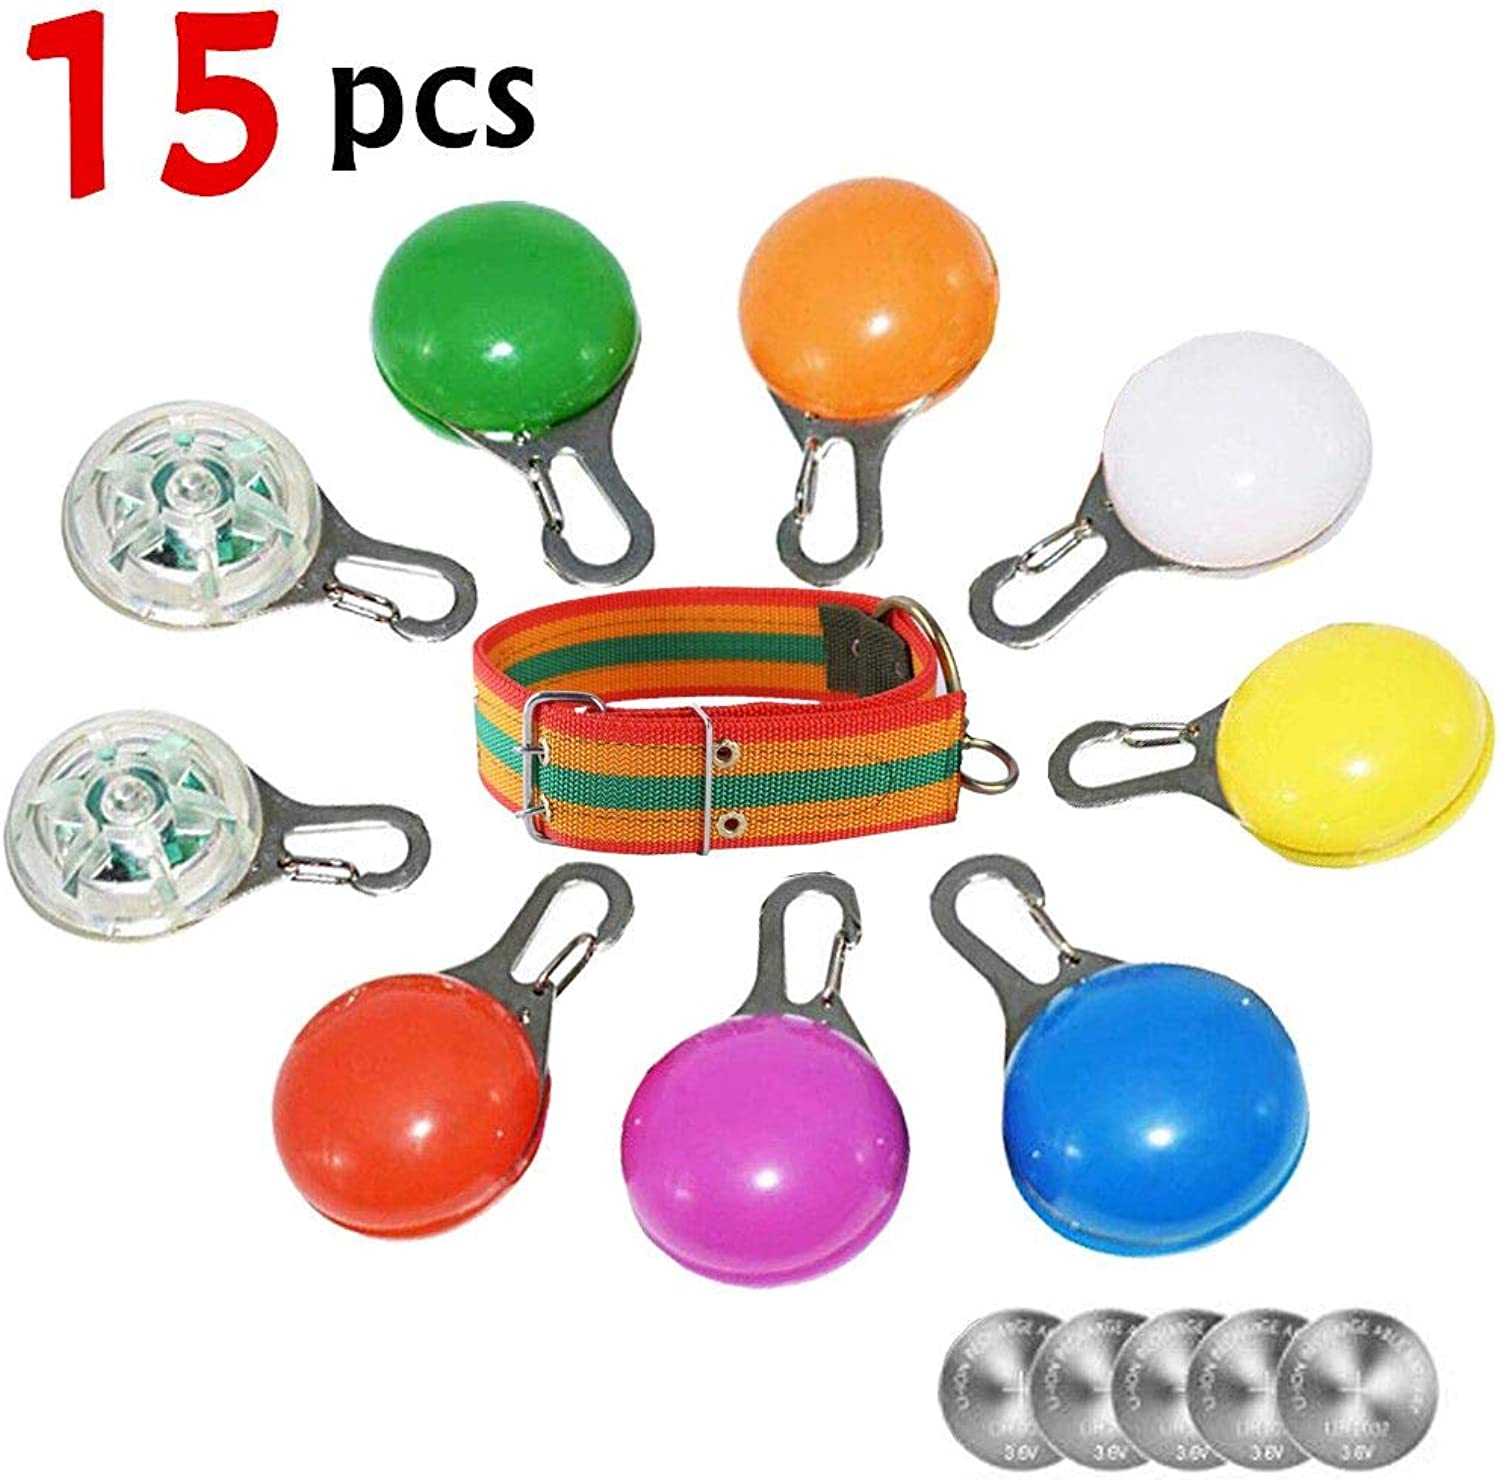 Dog Lights Collars, ClipOn Pet, Dog Collar LED Light, Dog Tag Light Led Safety Light Waterproof Dogs Cats Night Walking, Extra Replacement Batteries Dog Collar Included (colorful)